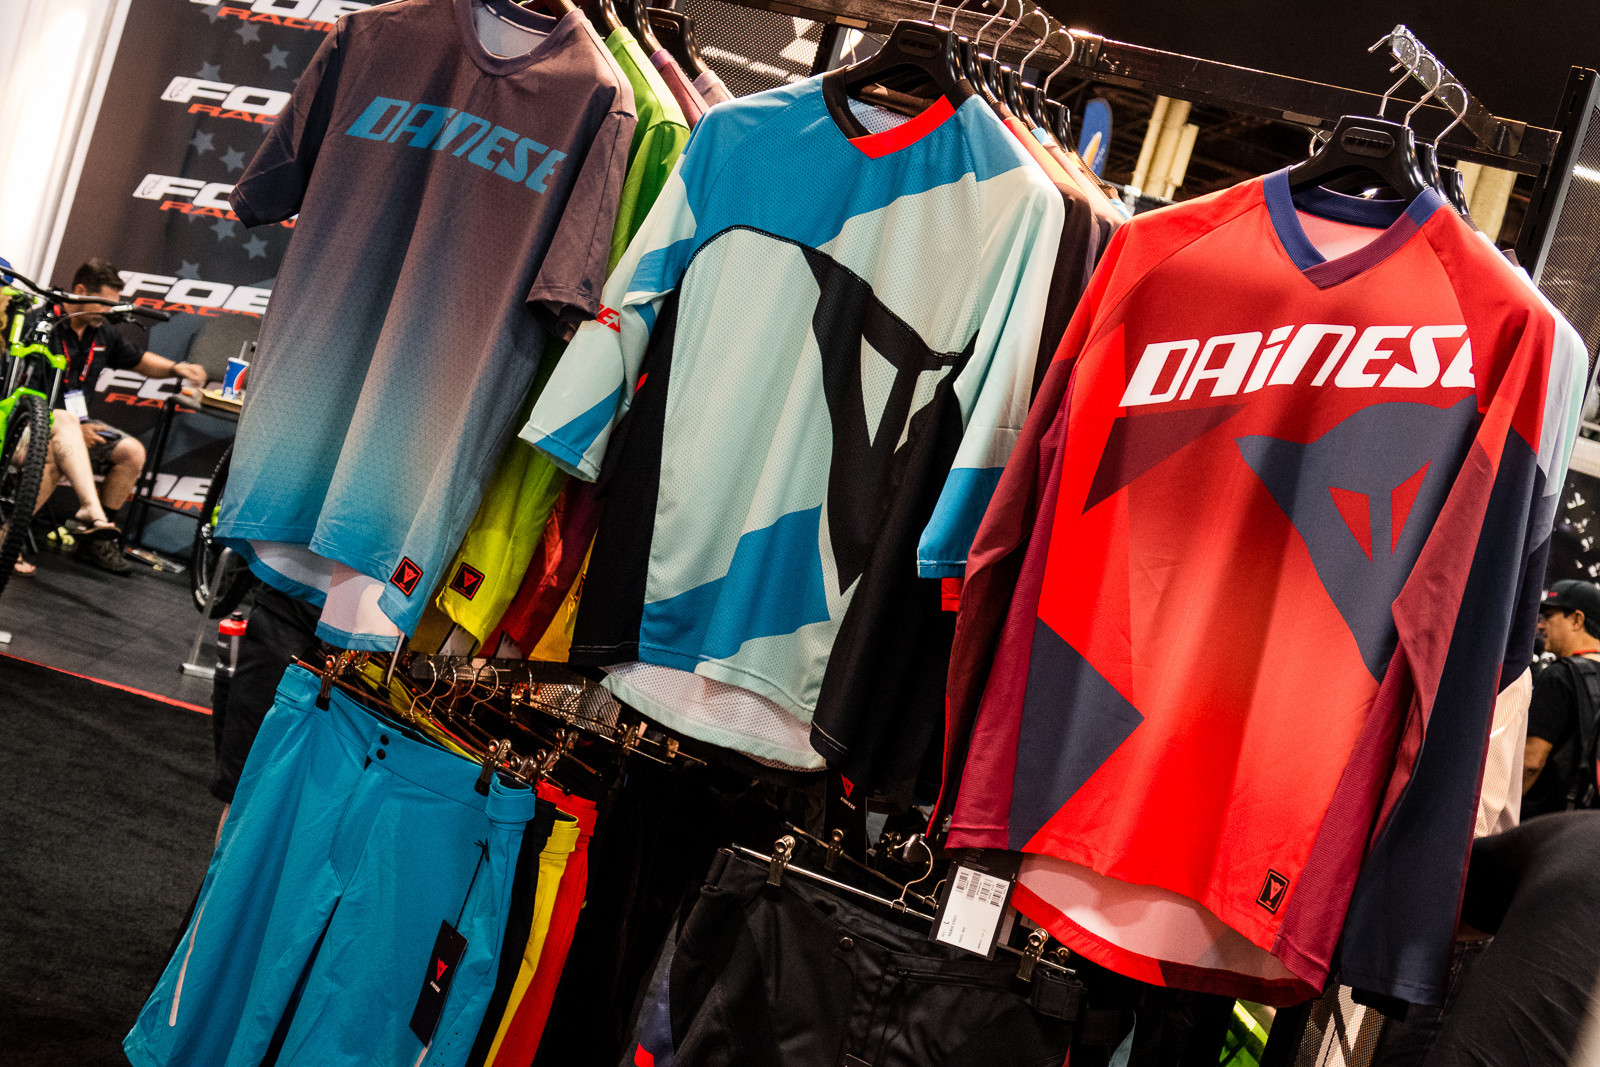 2016 Dainese MTB Apparel - 2016 Protective Gear and Apparel at Interbike - Mountain Biking Pictures - Vital MTB